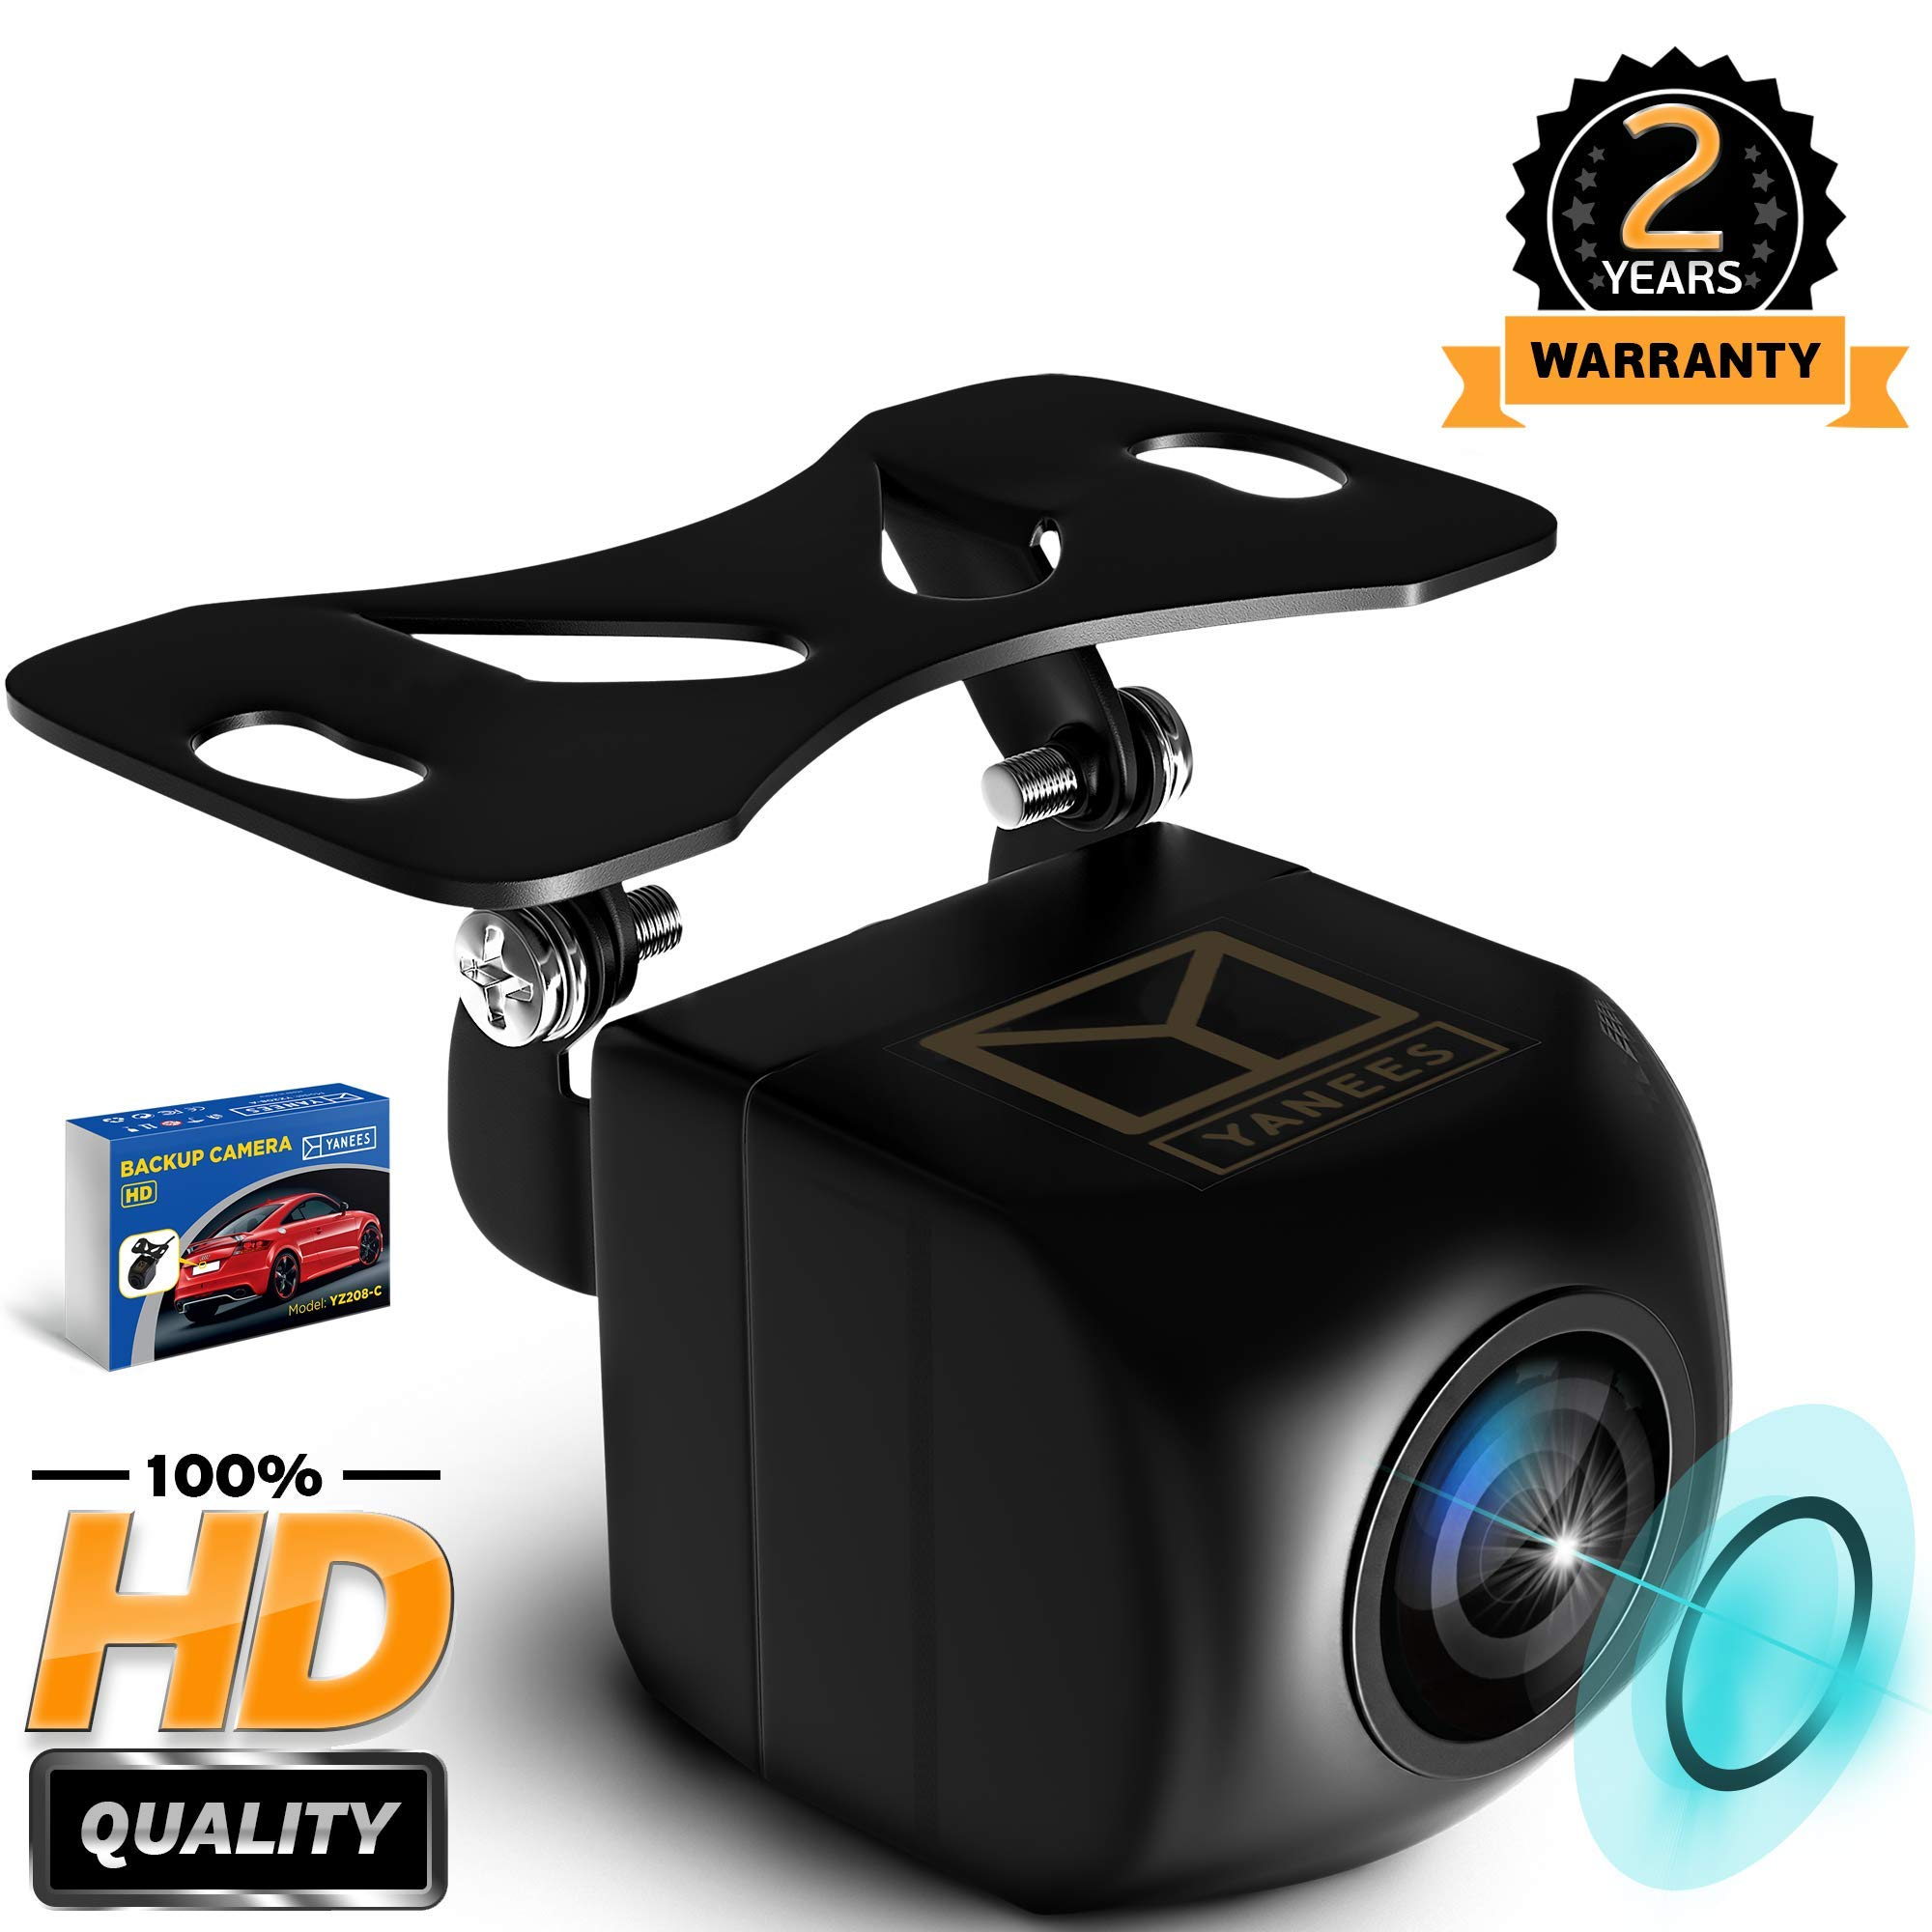 Yanees Backup Camera Night Vision - HD 1080p - Car Rear View Parking Camera - Best 170° Wide Angel Reverse Auto Back Up Car Camera Fits All Vehicles by YANEES